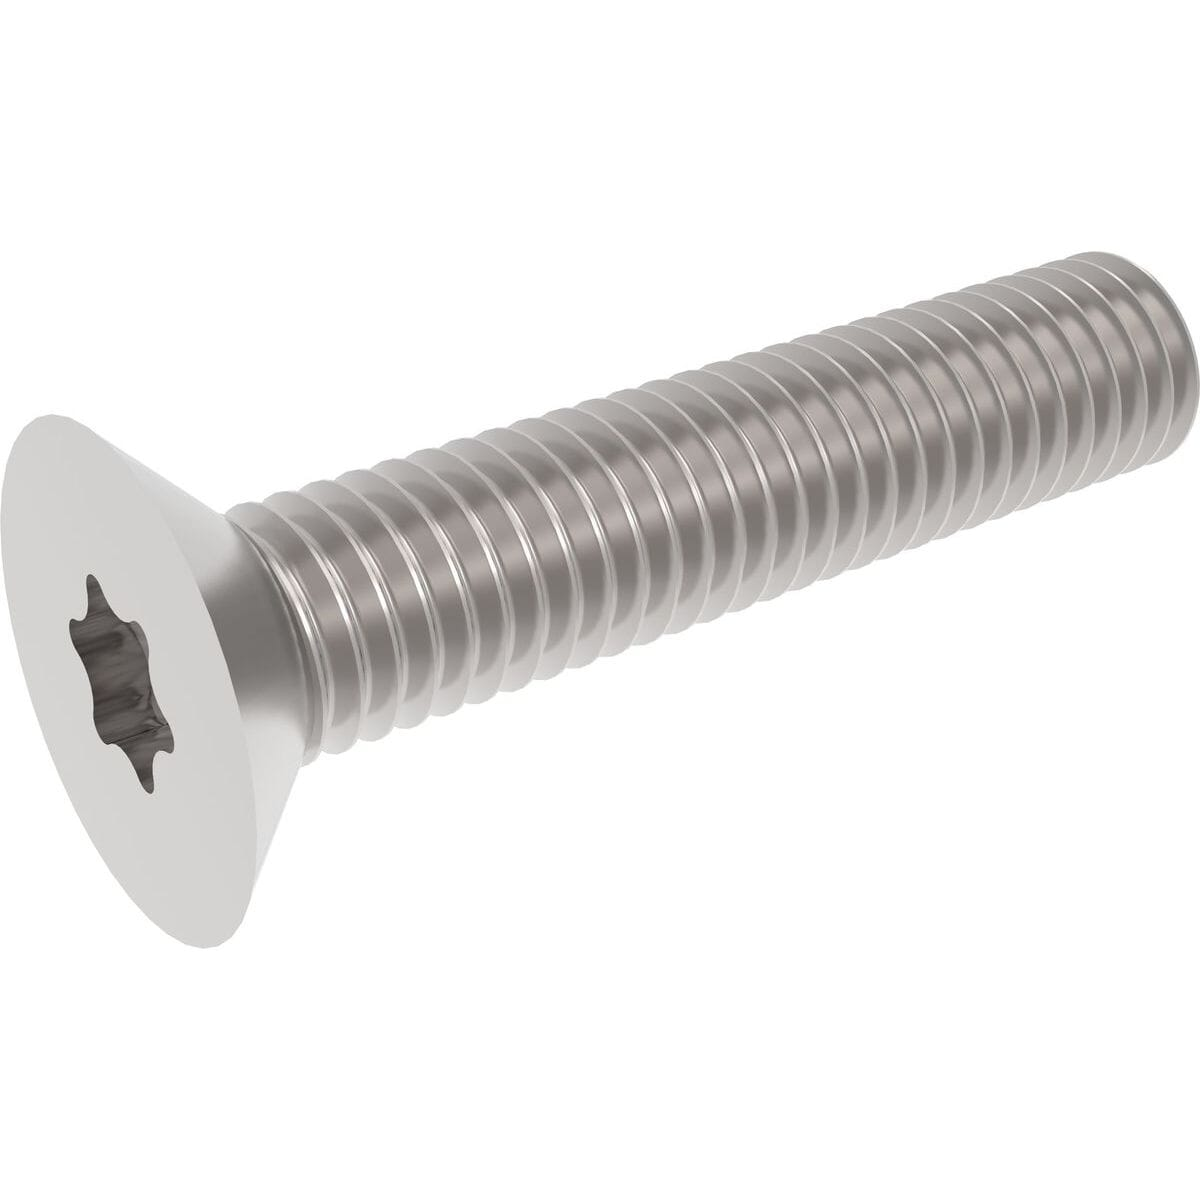 M8 x 16mm Torx Countersunk Screws (ISO 14581) - Stainless Steel (A2)